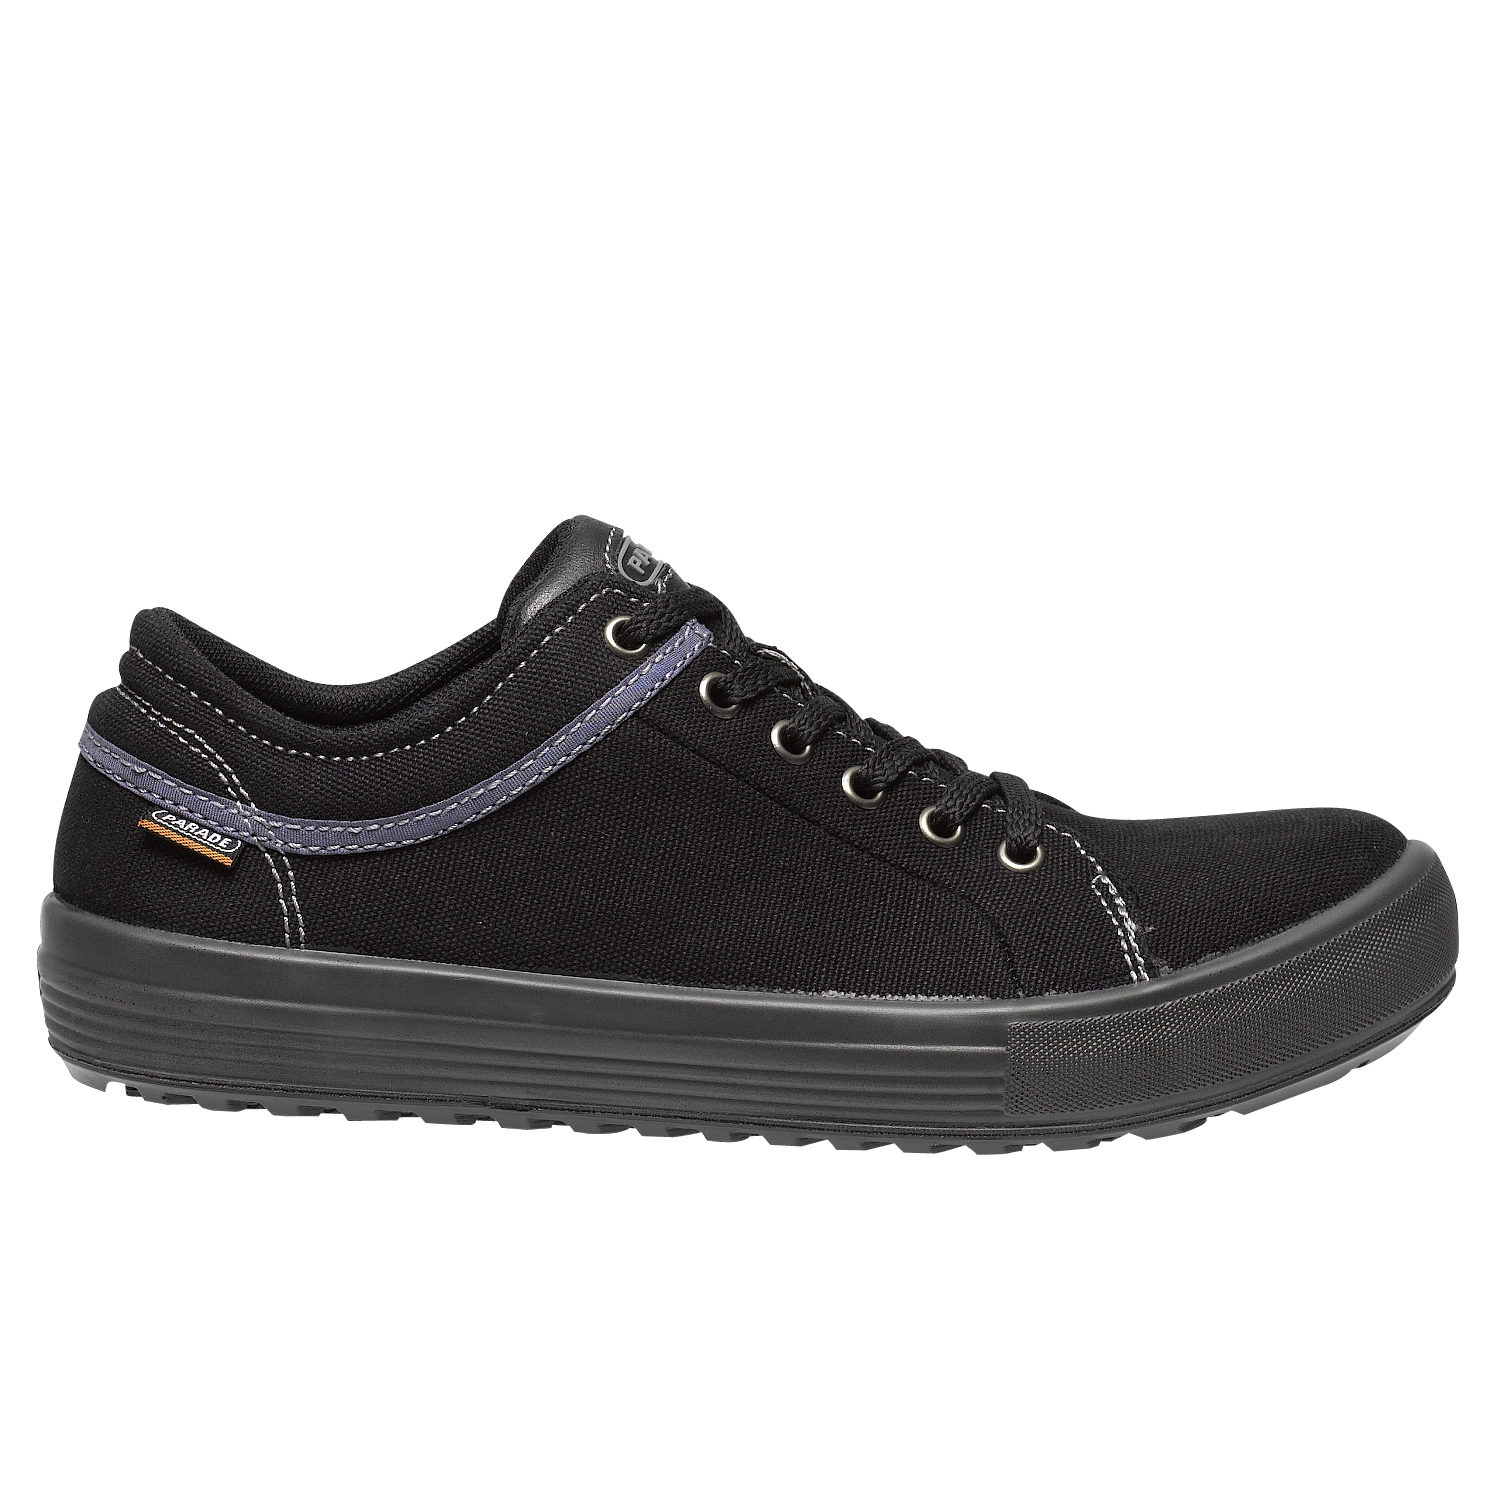 Chaussures-de-securite-basses-Parade-Valley-Norme-S1P-Homme